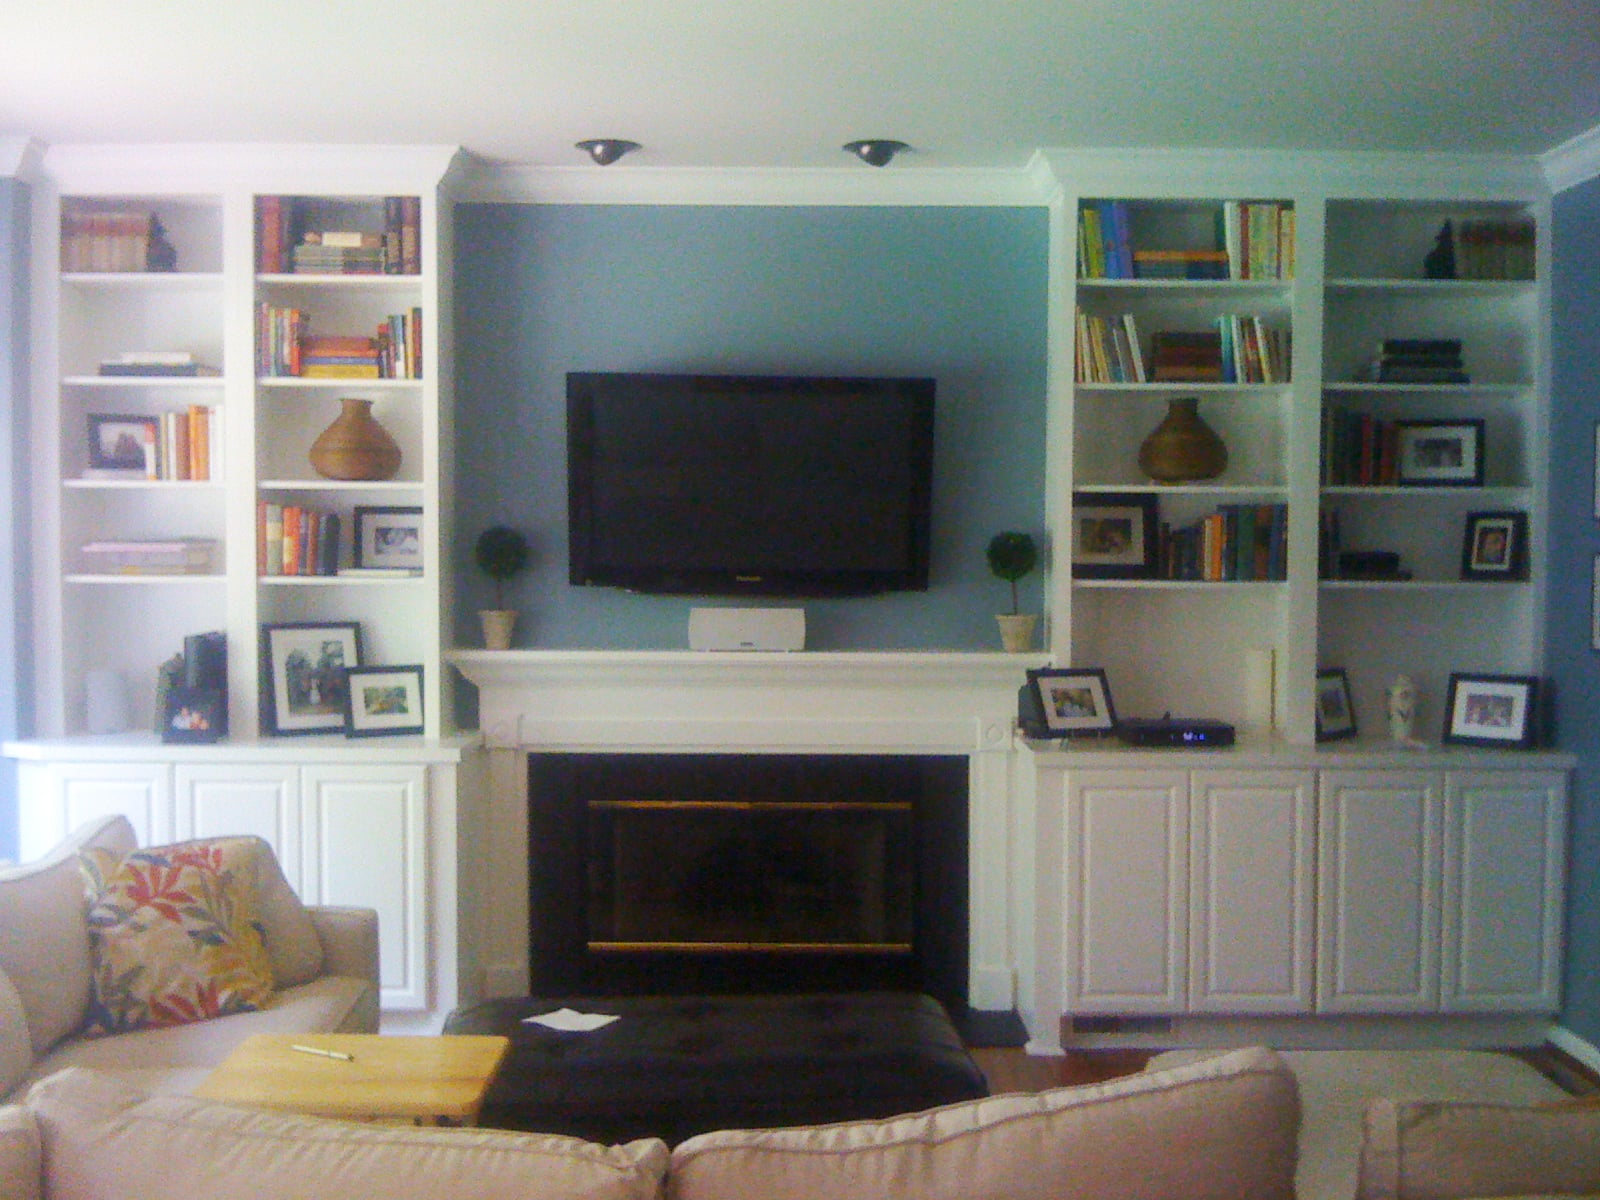 Geeting Fire Place New Look.JPG